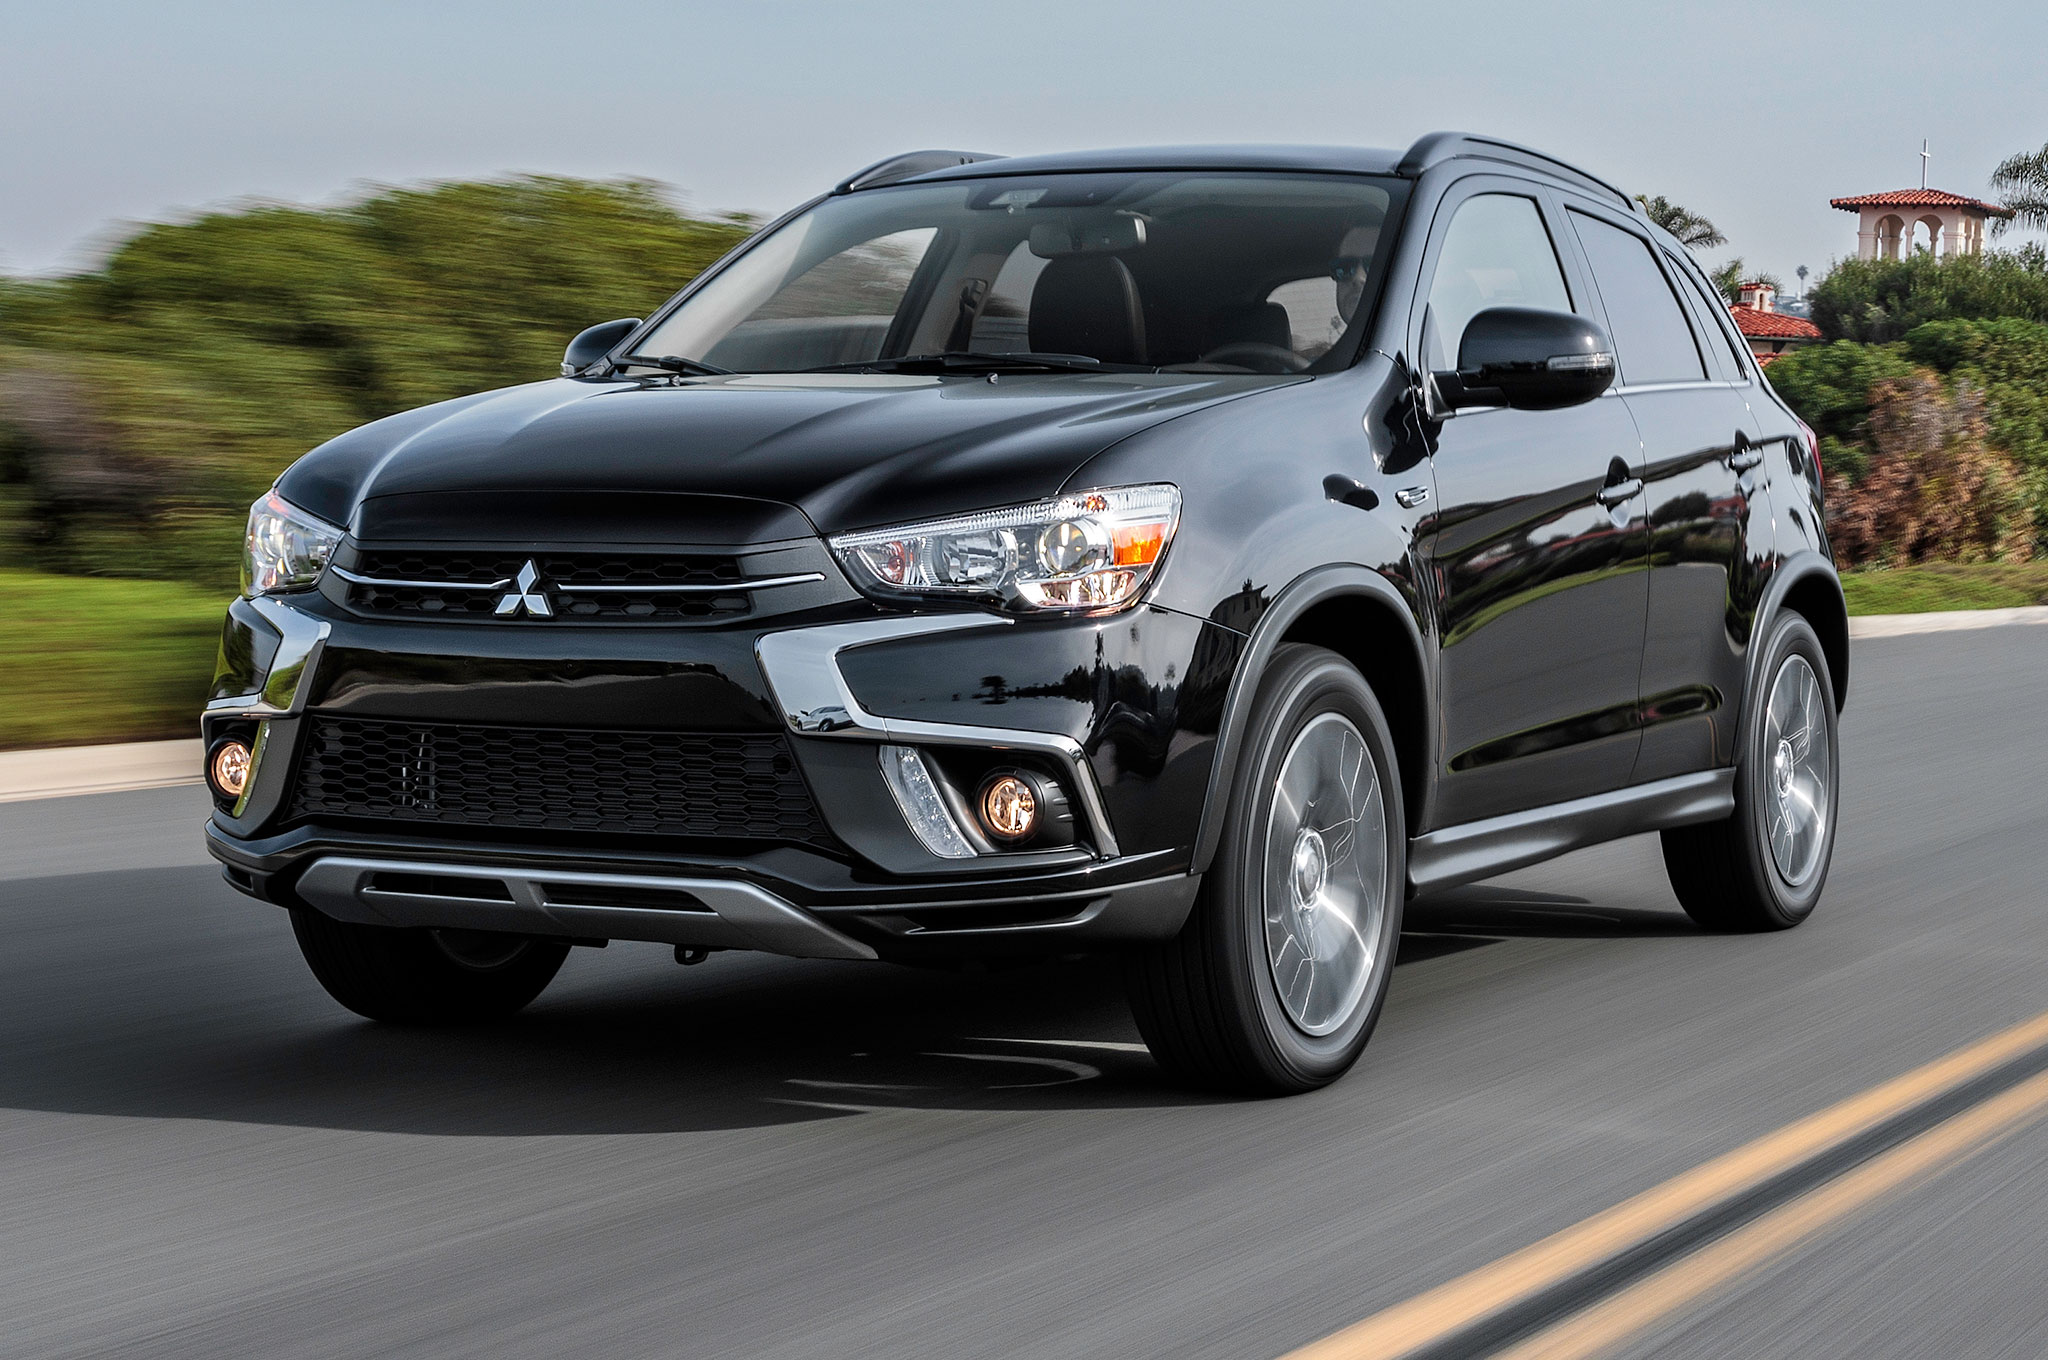 2018-Mitsubishi-Outlander-Sport-front-side-motion-view